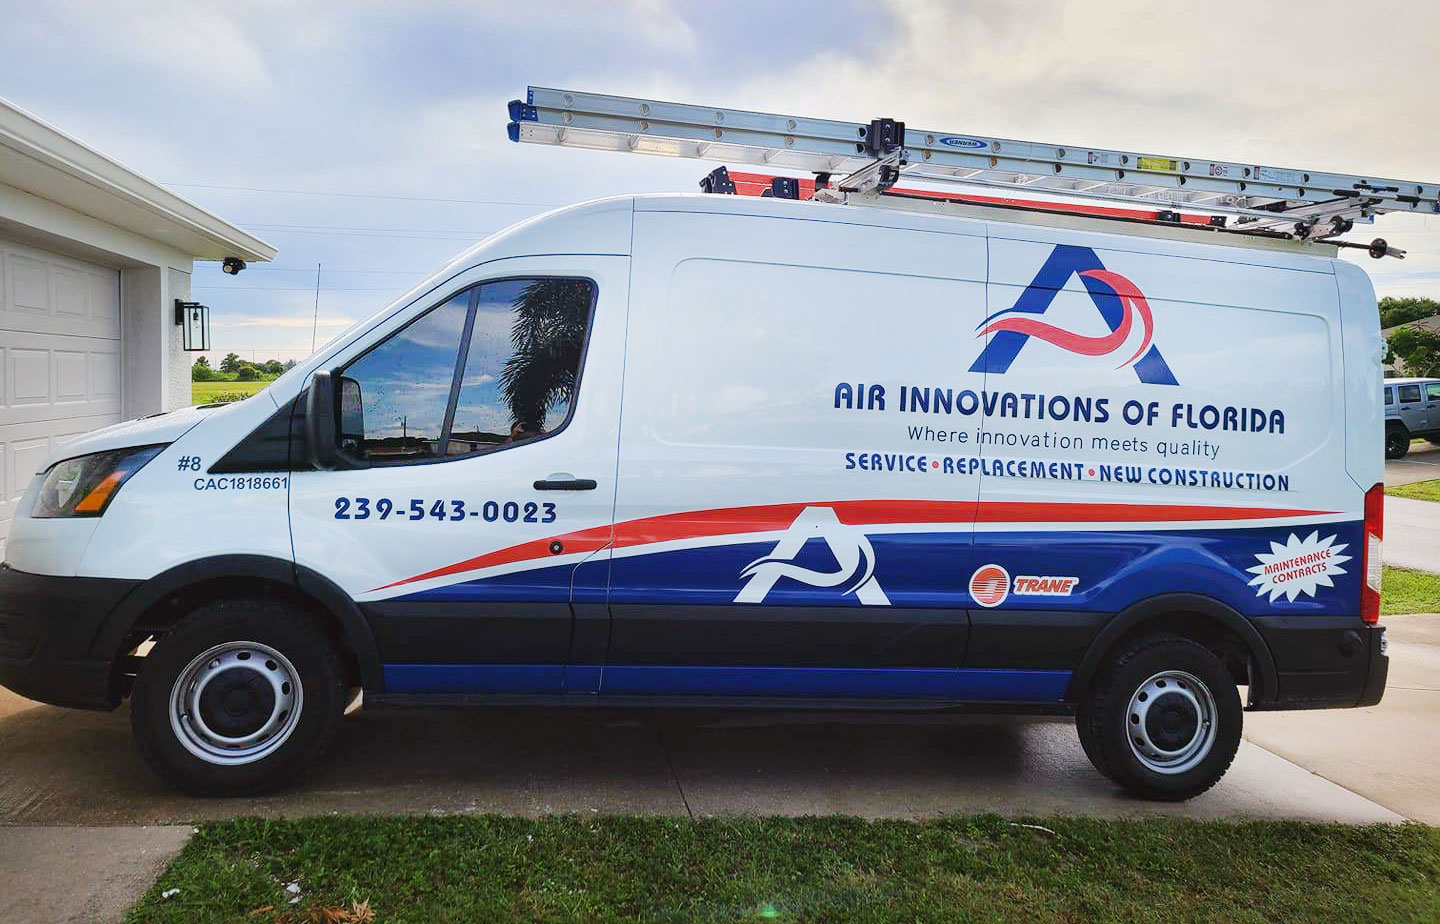 air innovations of florida van